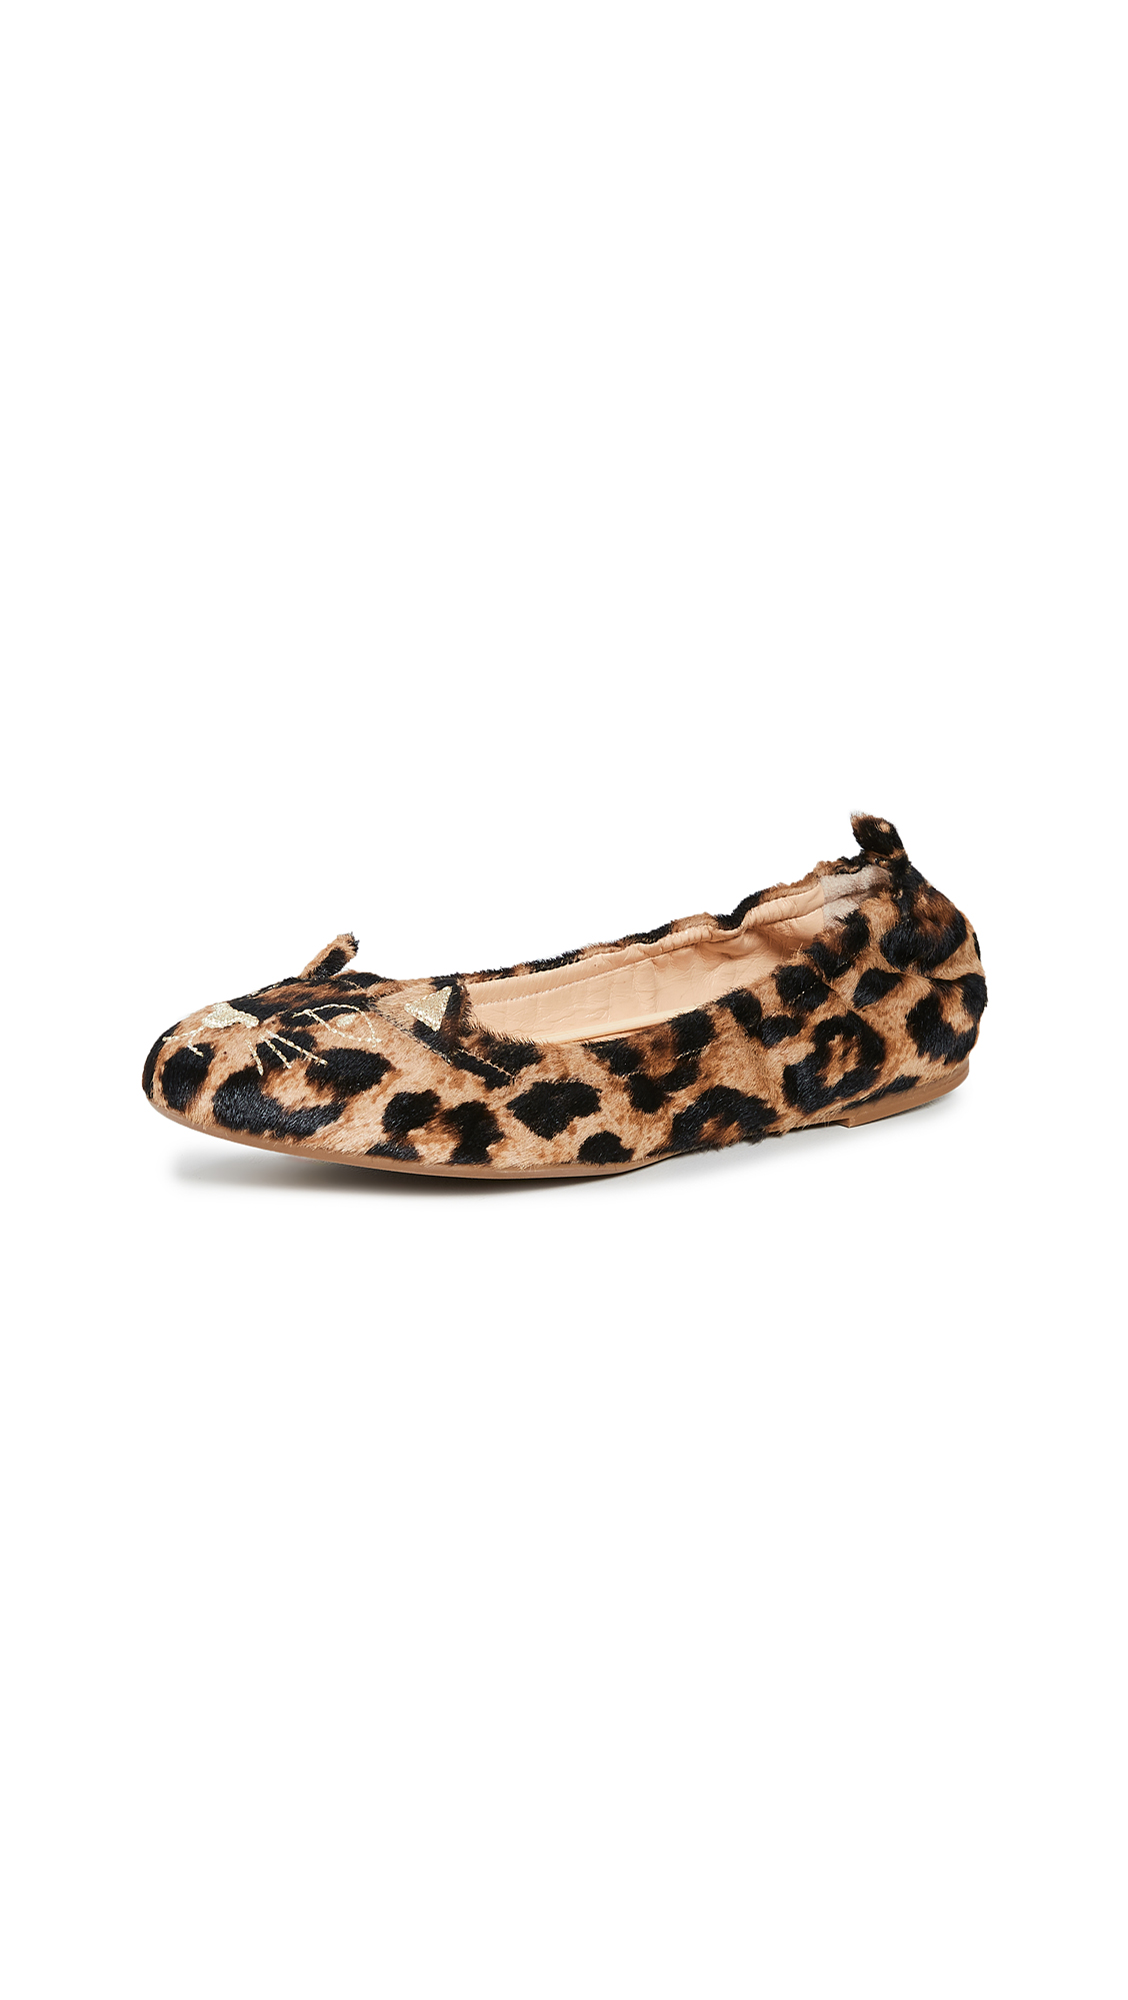 Charlotte Olympia Kitty Soft Ballet Flats In Leopard